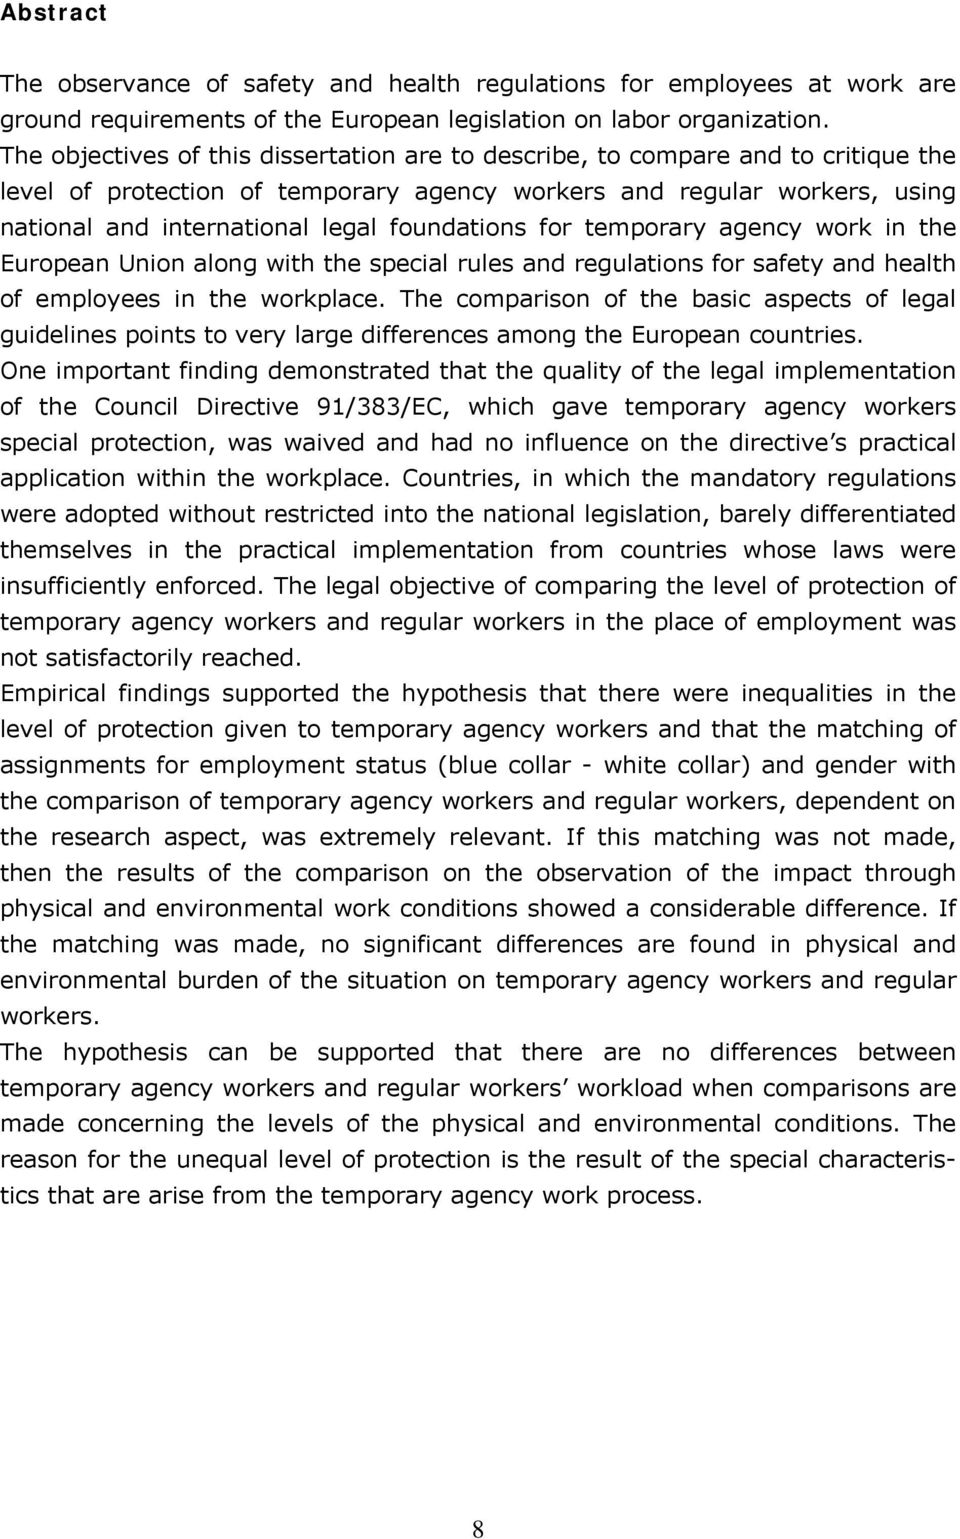 foundations for temporary agency work in the European Union along with the special rules and regulations for safety and health of employees in the workplace.